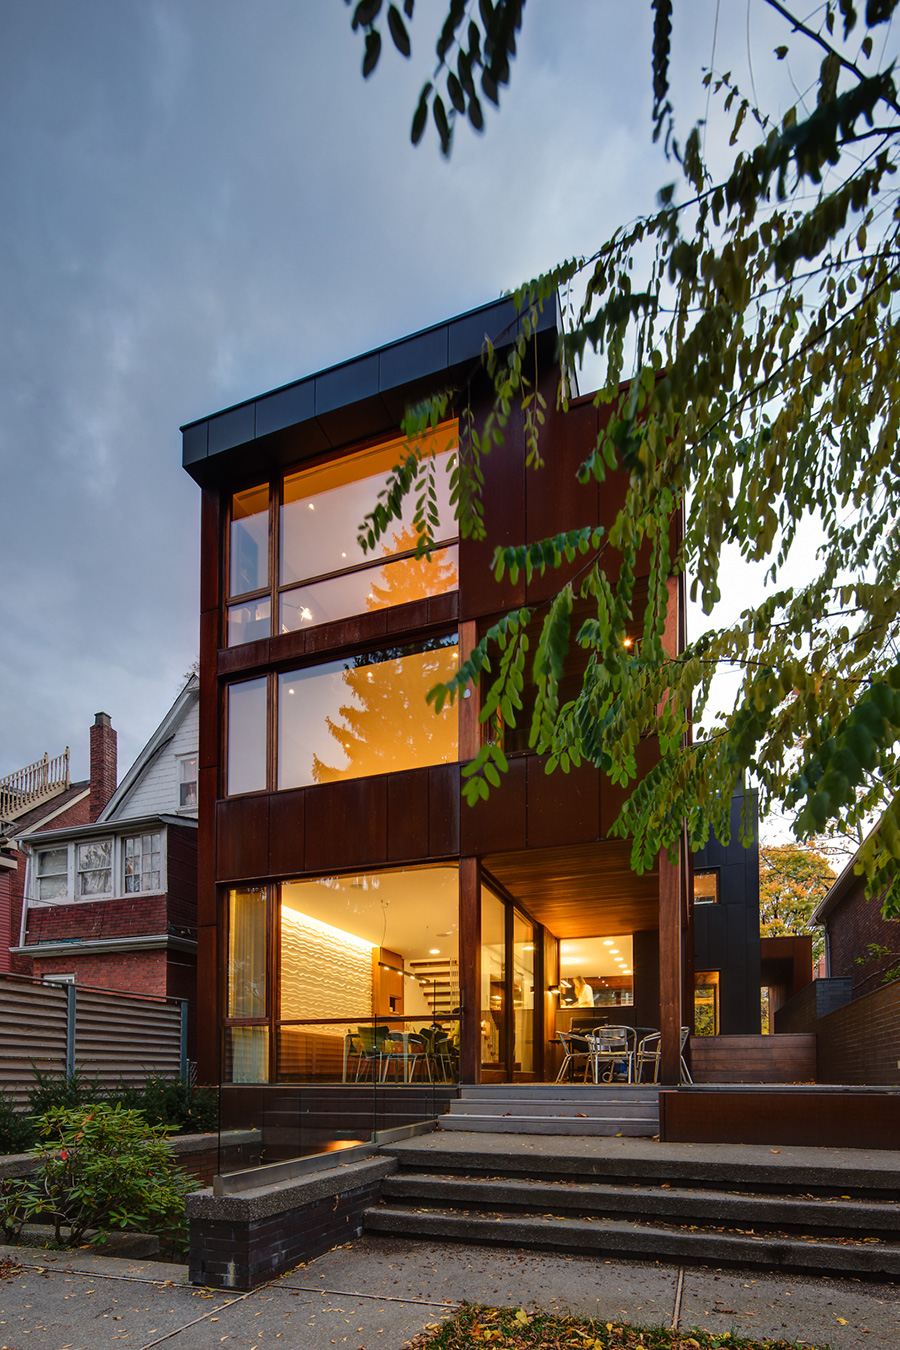 Toronto Roncevalles home with Contemporary self-weathering steel facade